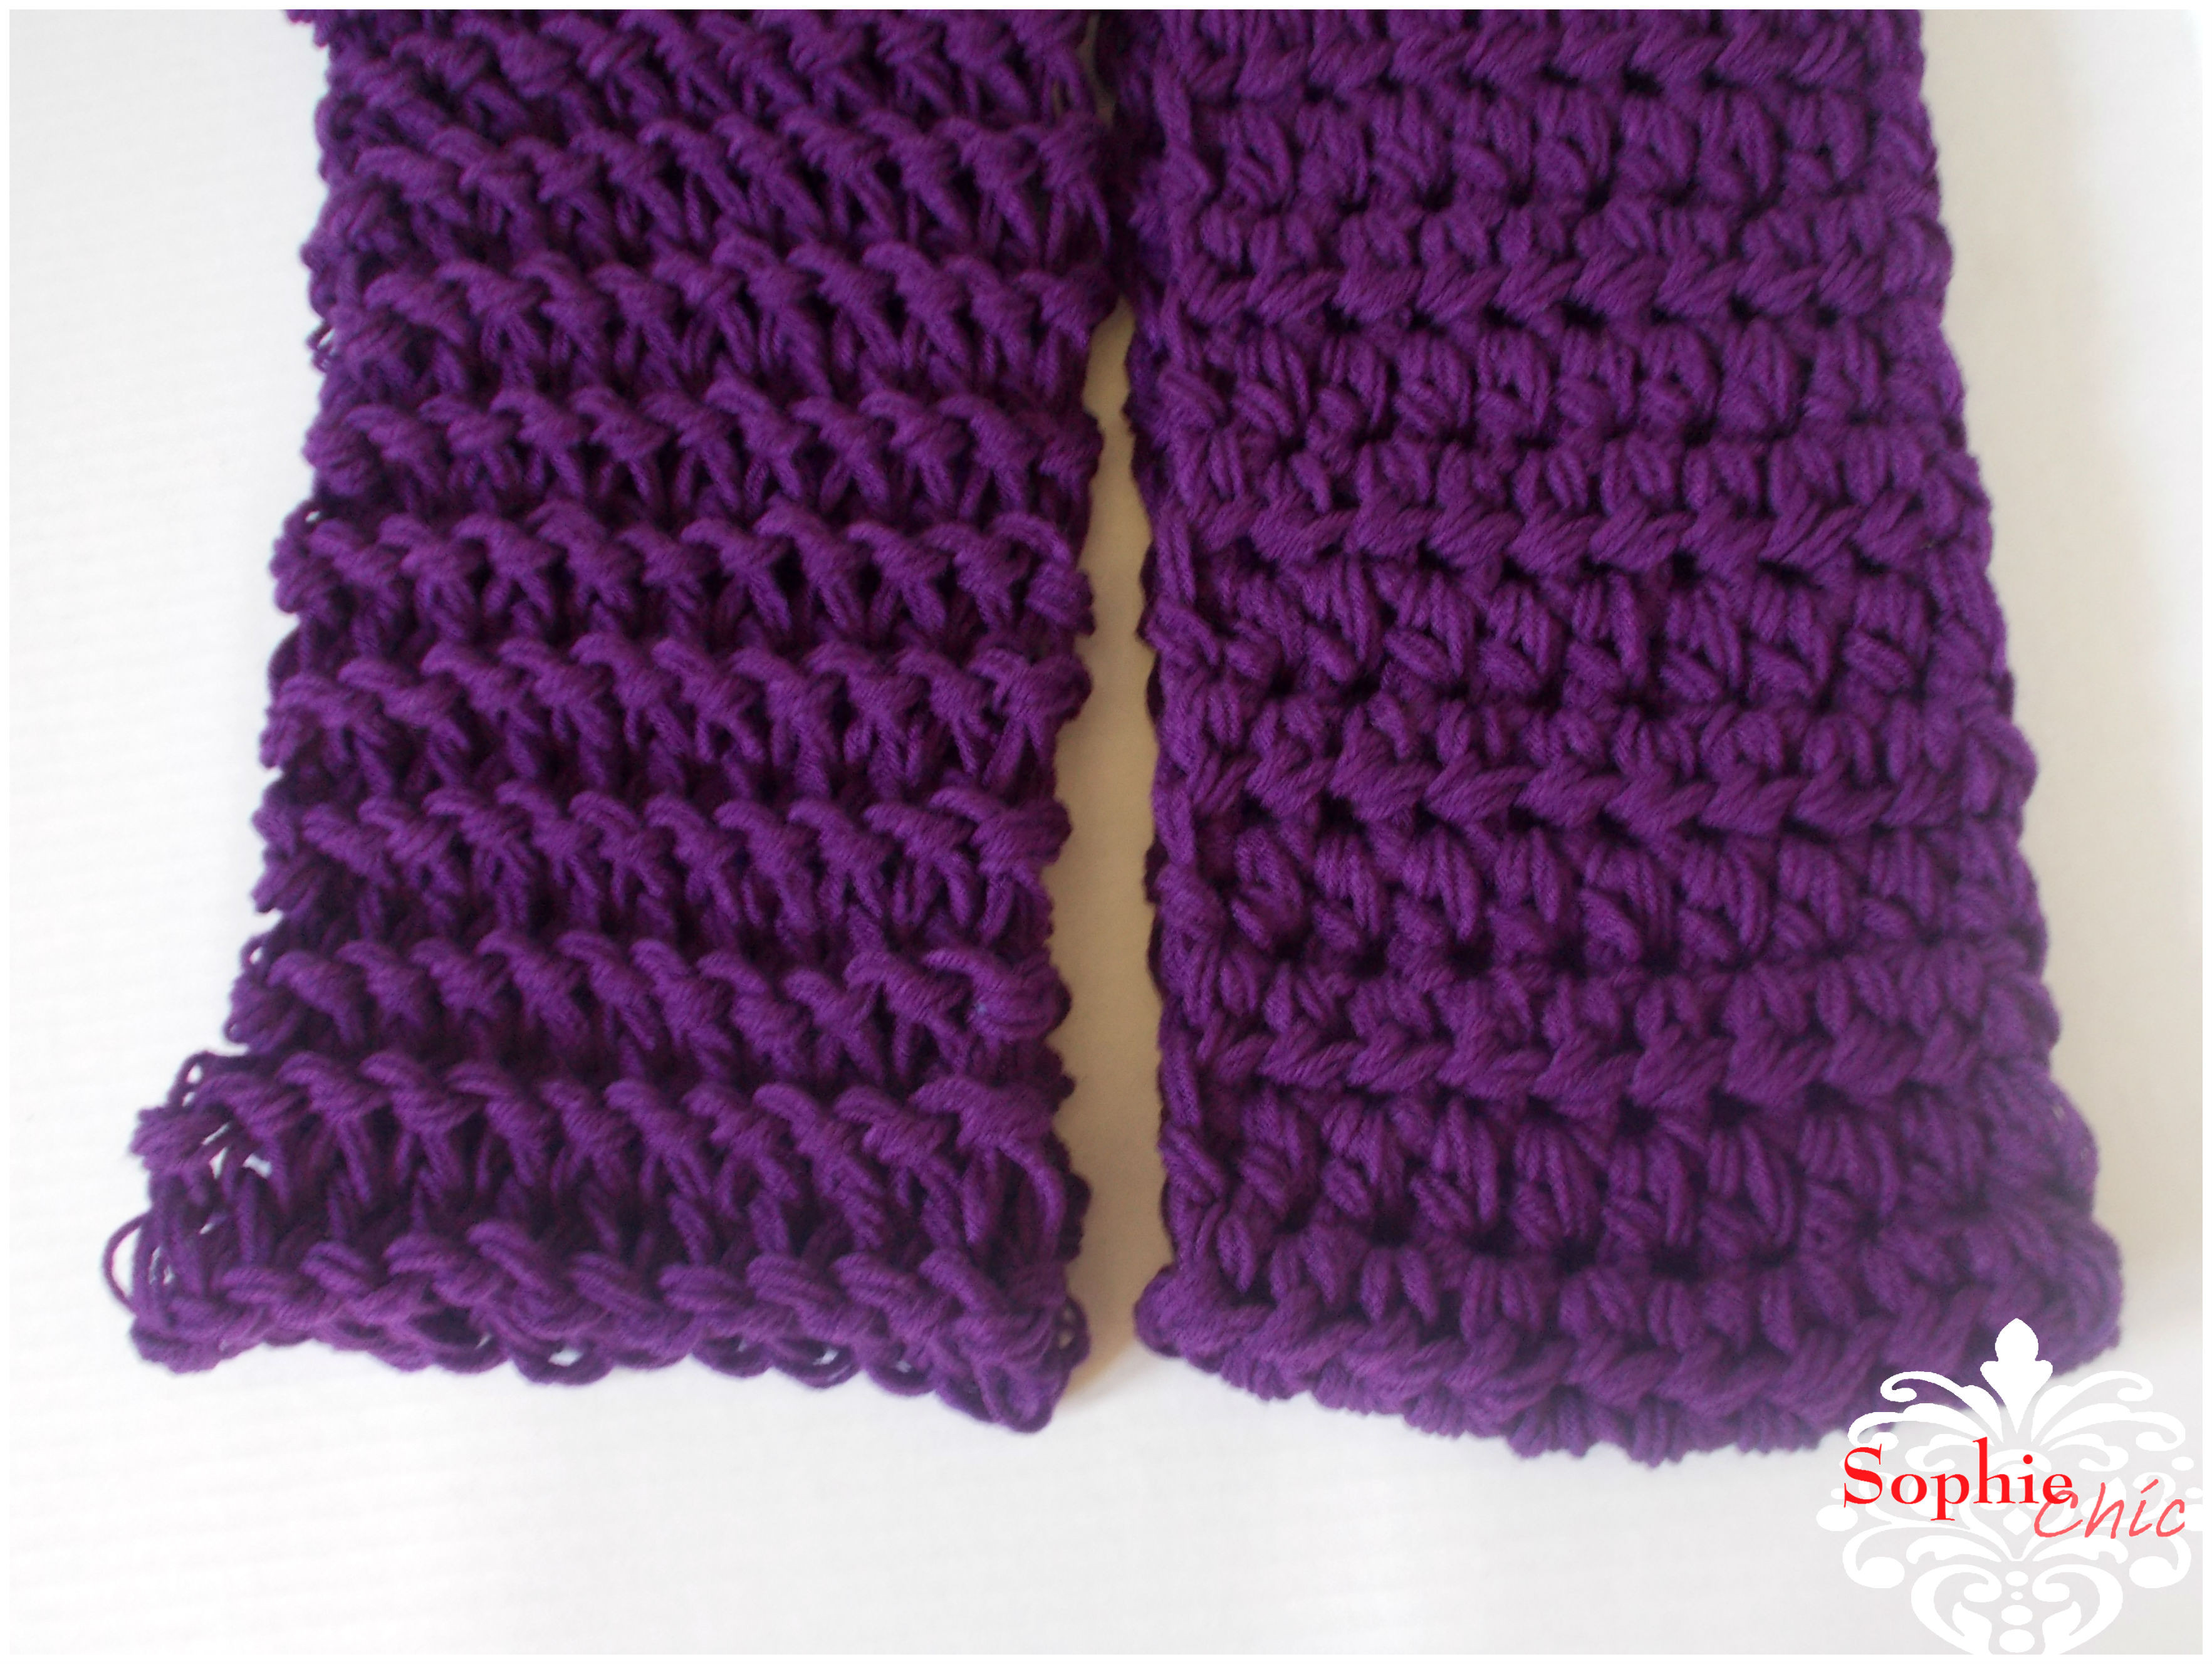 Luxury Knit or Crochet Crochet Vs Knit Of Perfect 40 Images Crochet Vs Knit